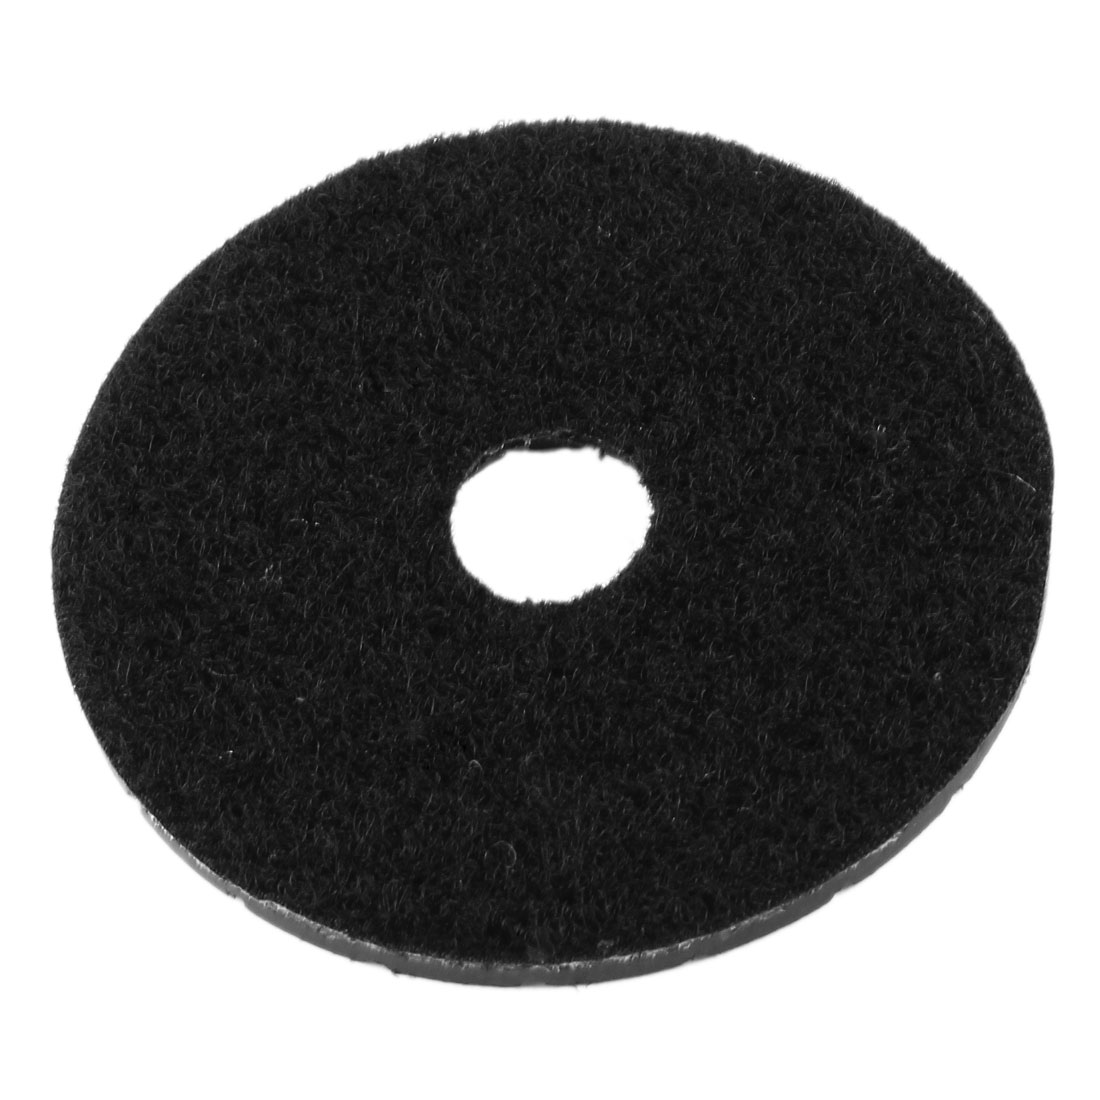 "3.1"" Dia 50 Grit Black Diamond Polishing Pad for Concrete Granite"